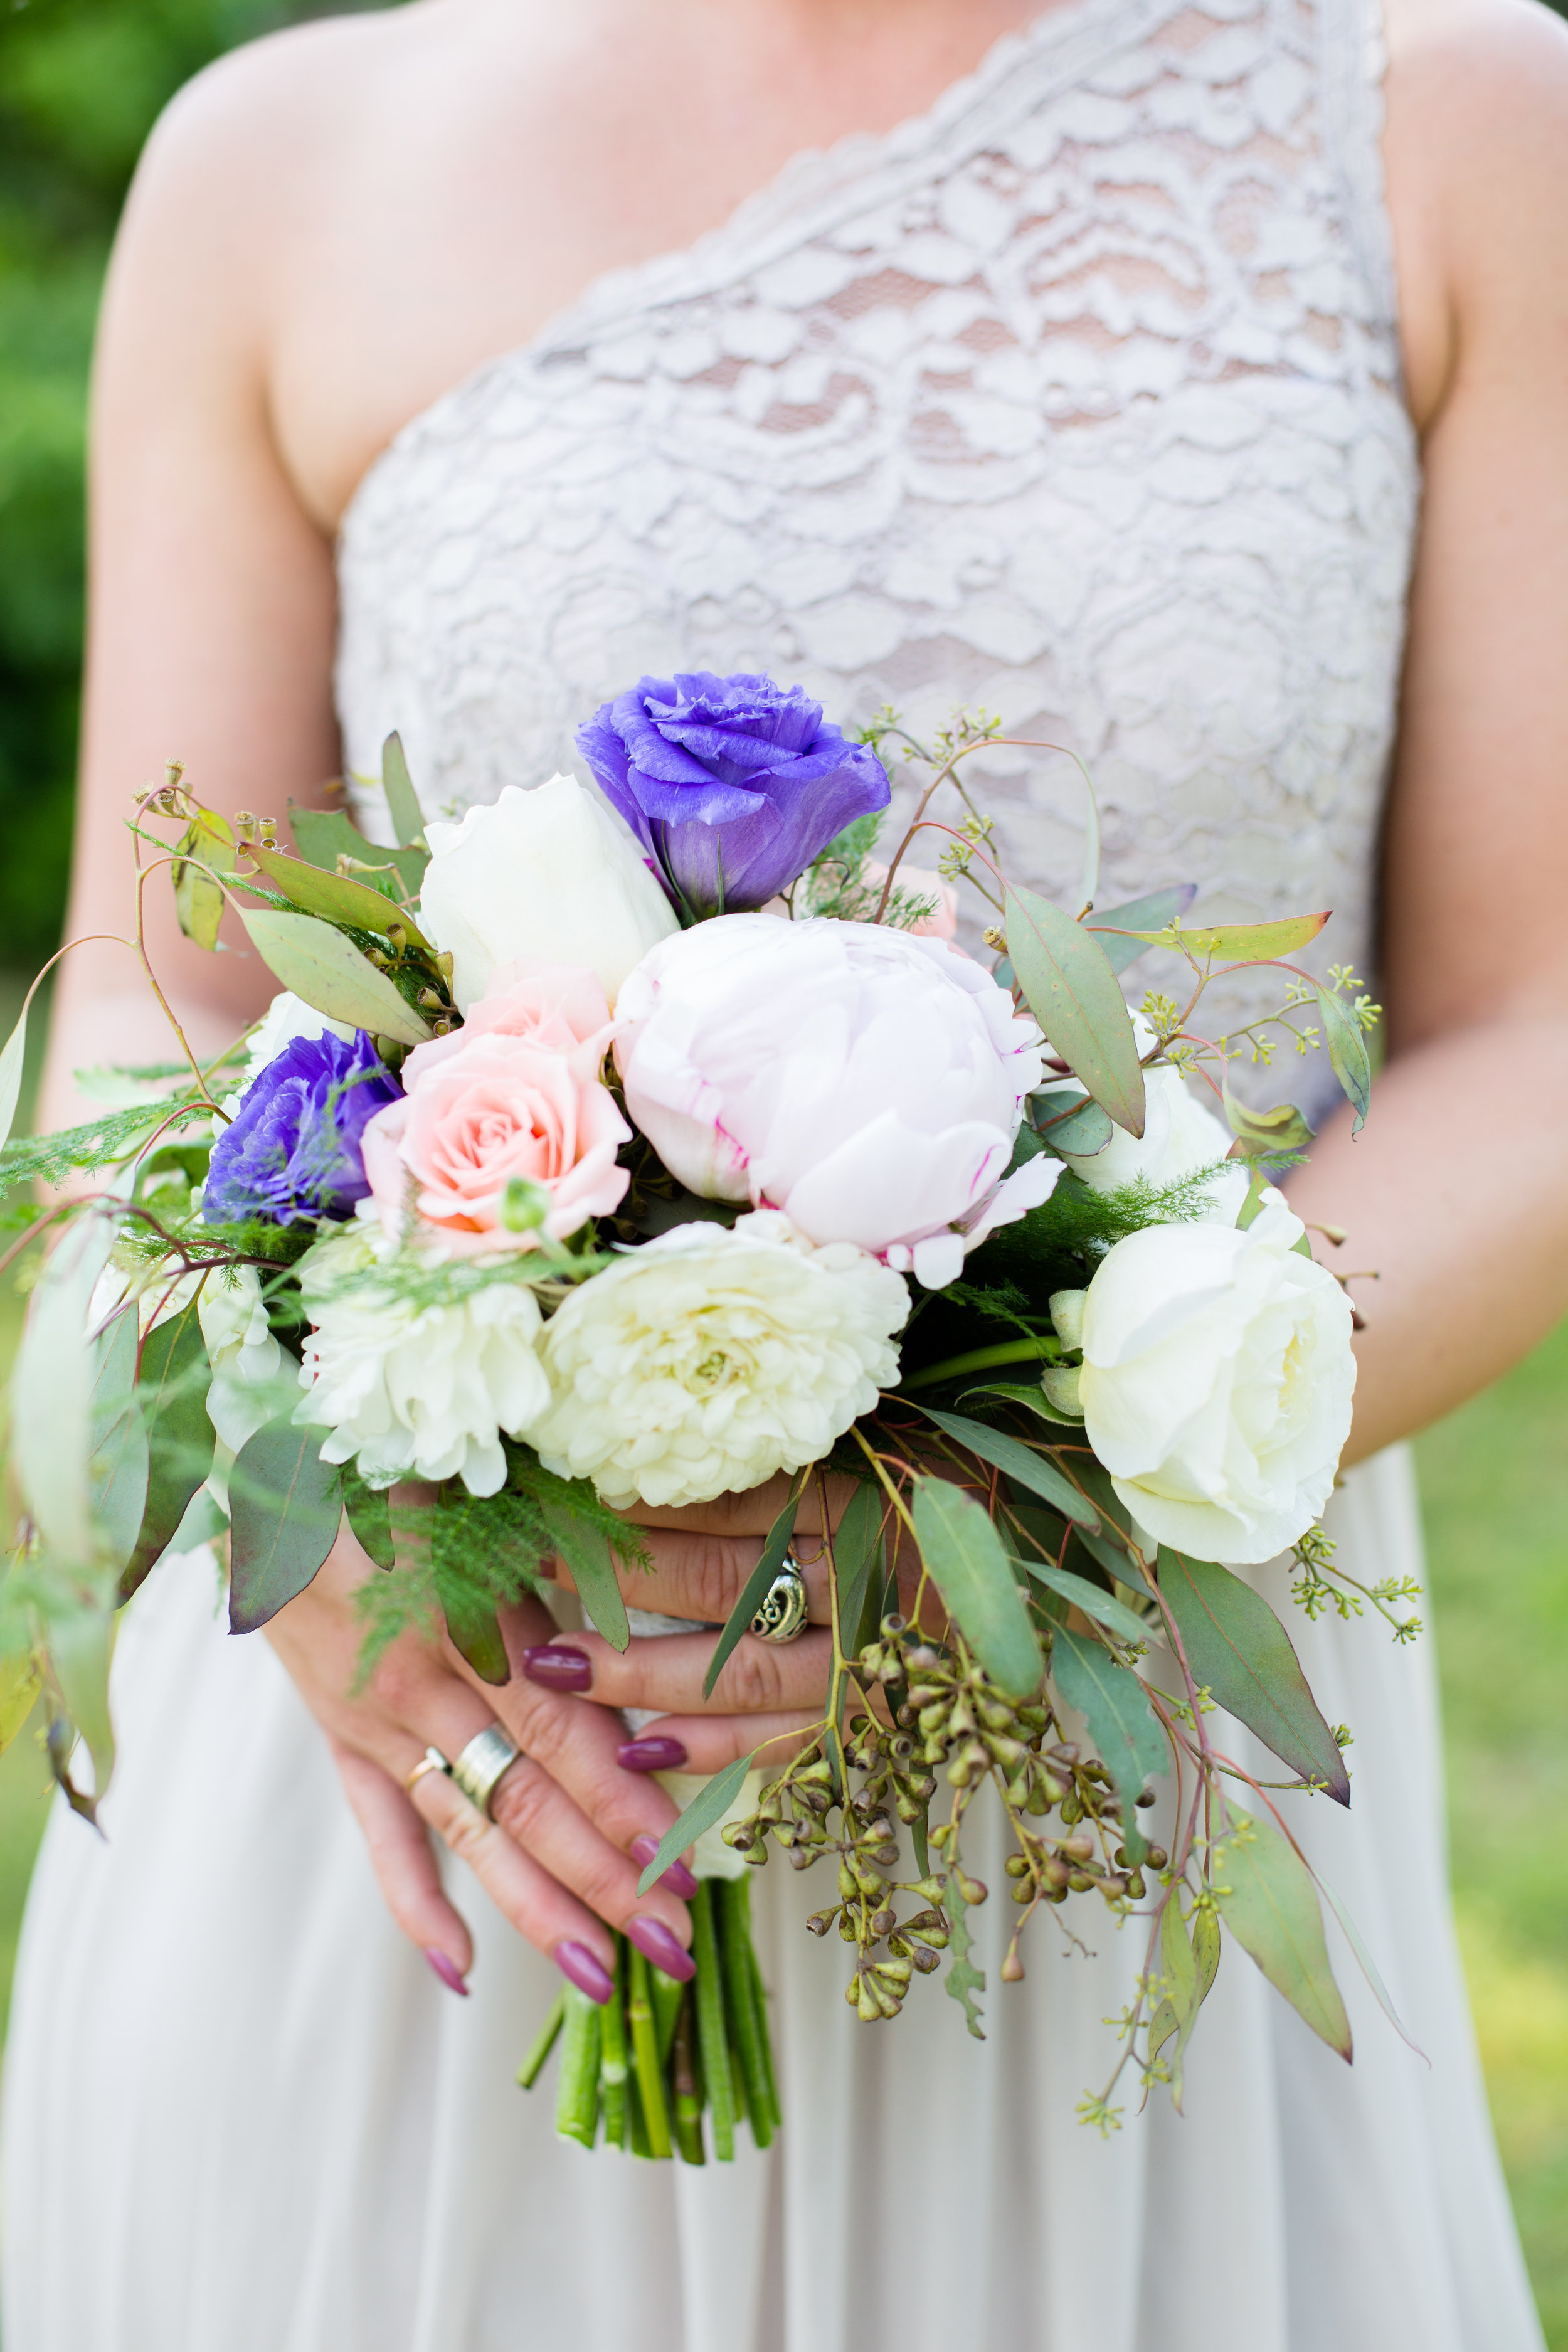 Claypit creek wedding photography NJ Wedding Boquet Green, White, and Purple